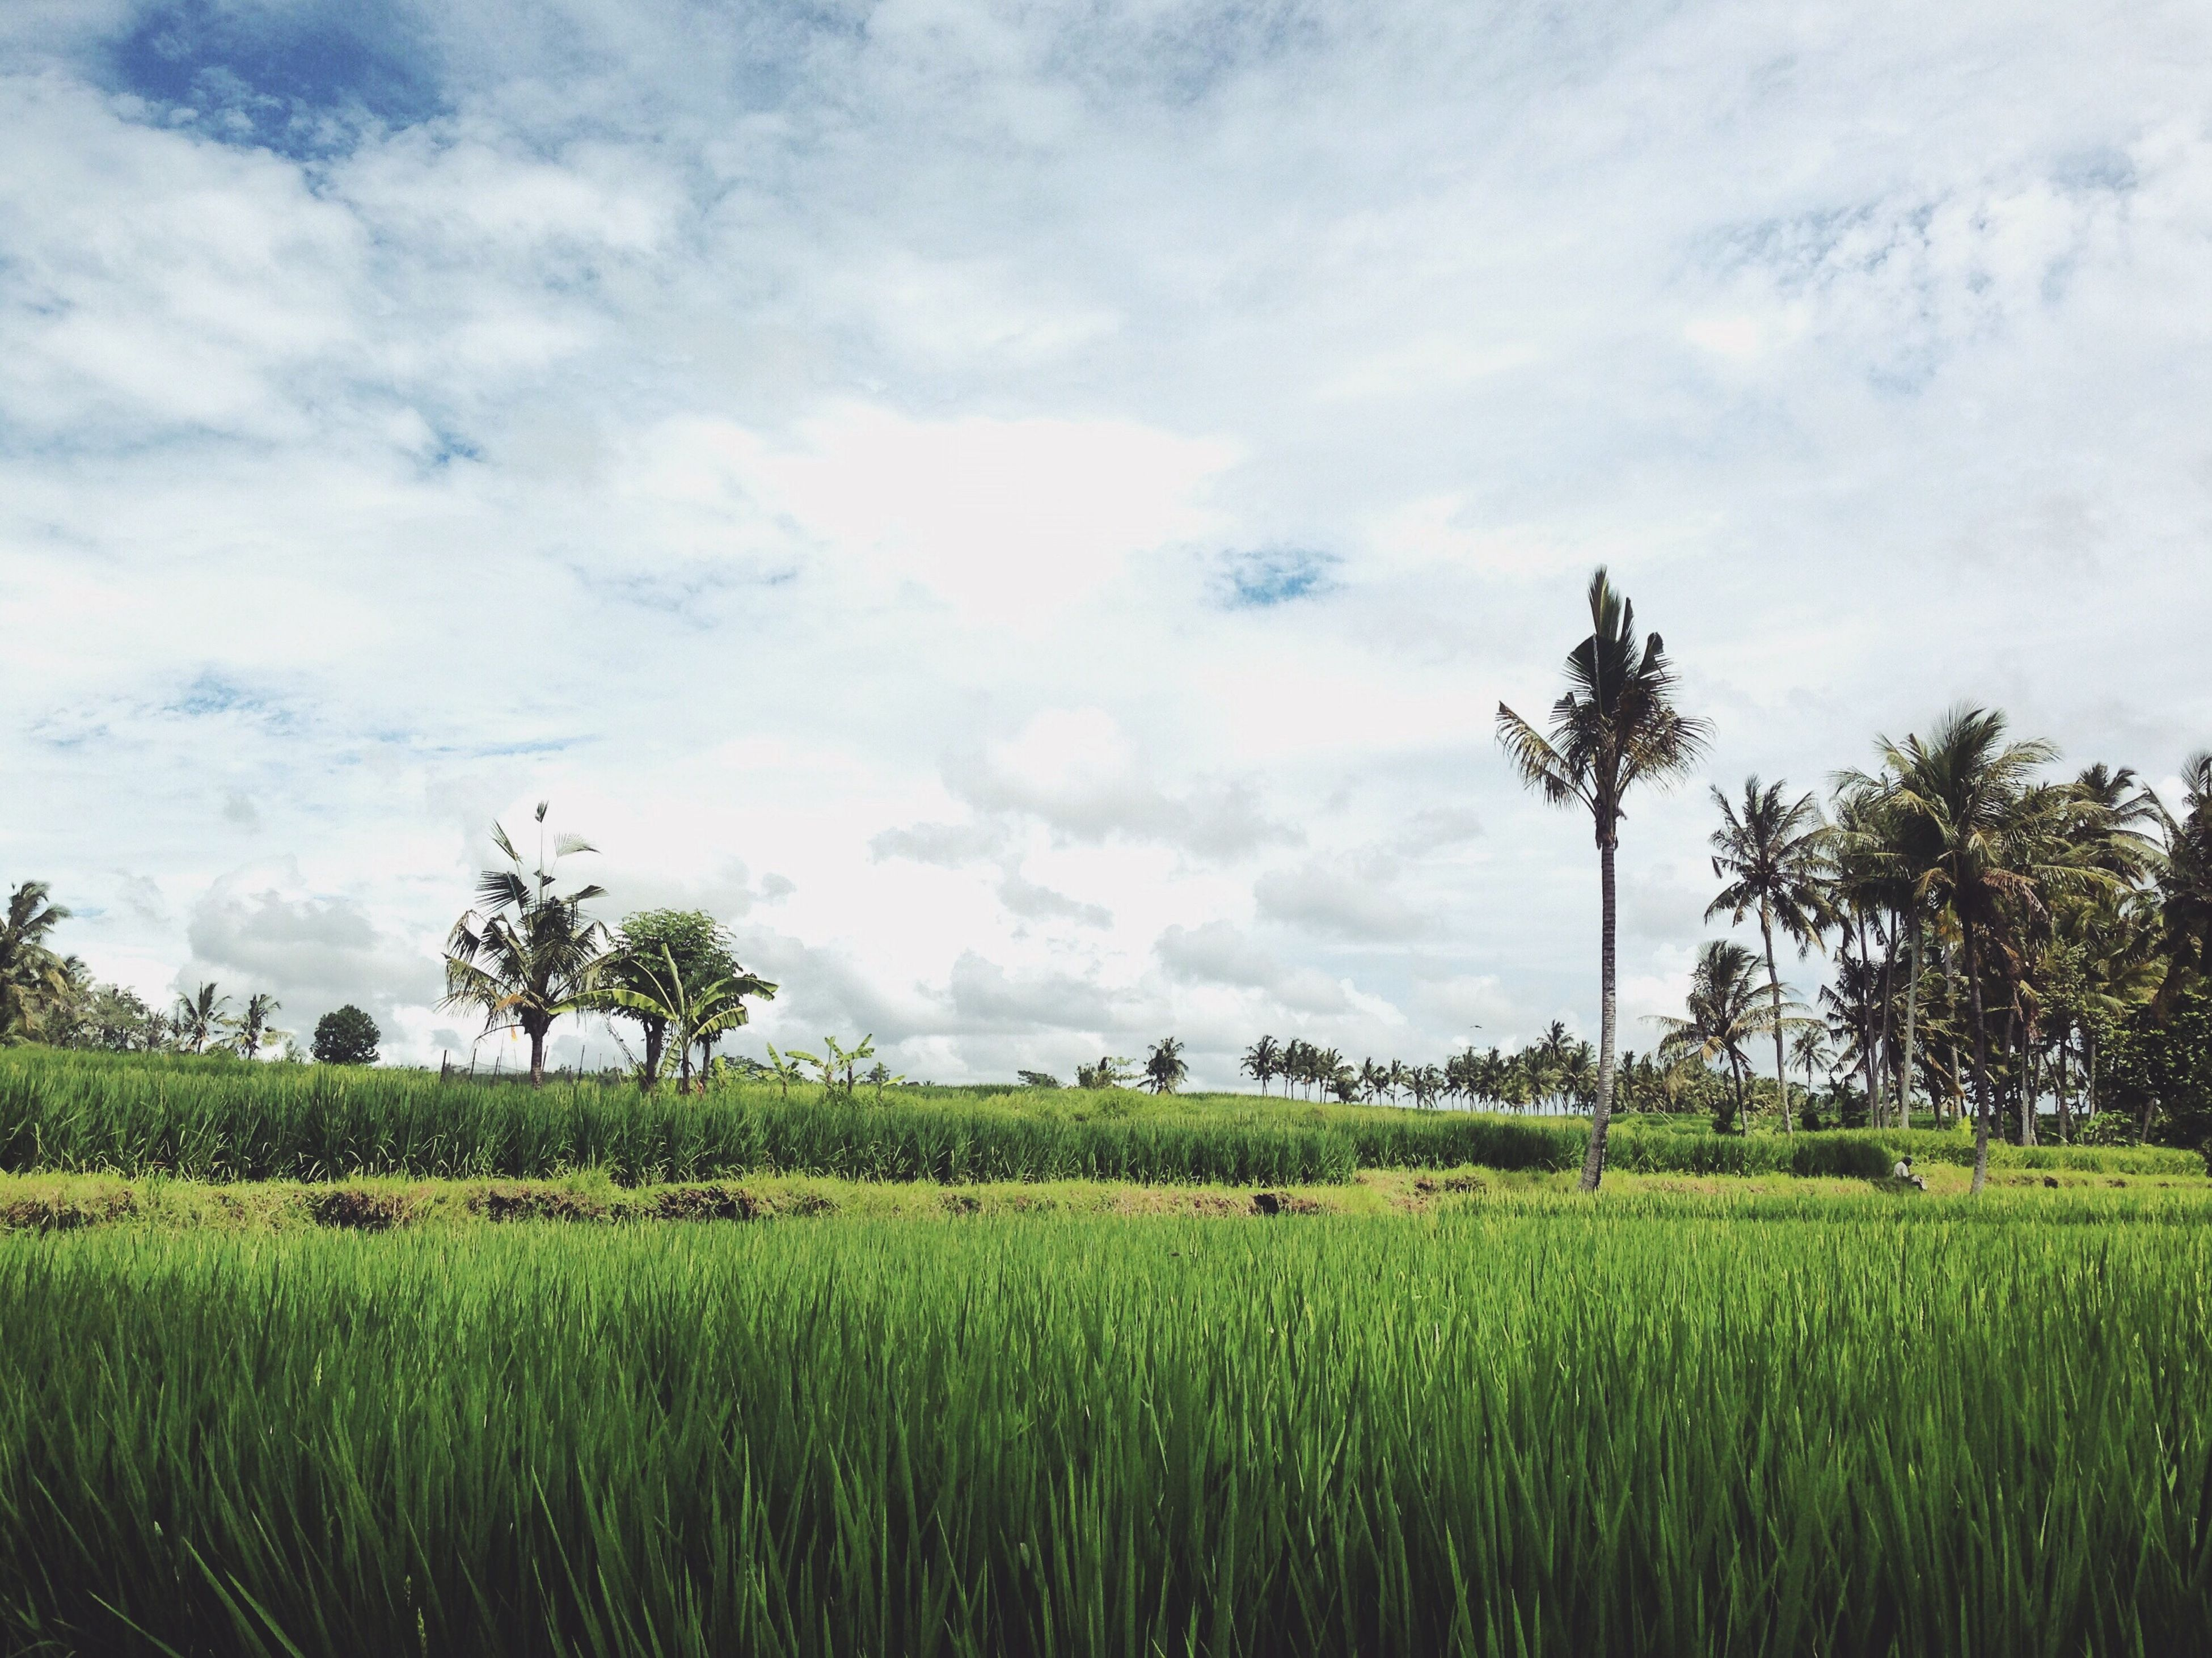 field, agriculture, growth, sky, rural scene, landscape, tranquility, tranquil scene, crop, tree, farm, nature, beauty in nature, scenics, cloud - sky, grass, cultivated land, palm tree, green color, cloud